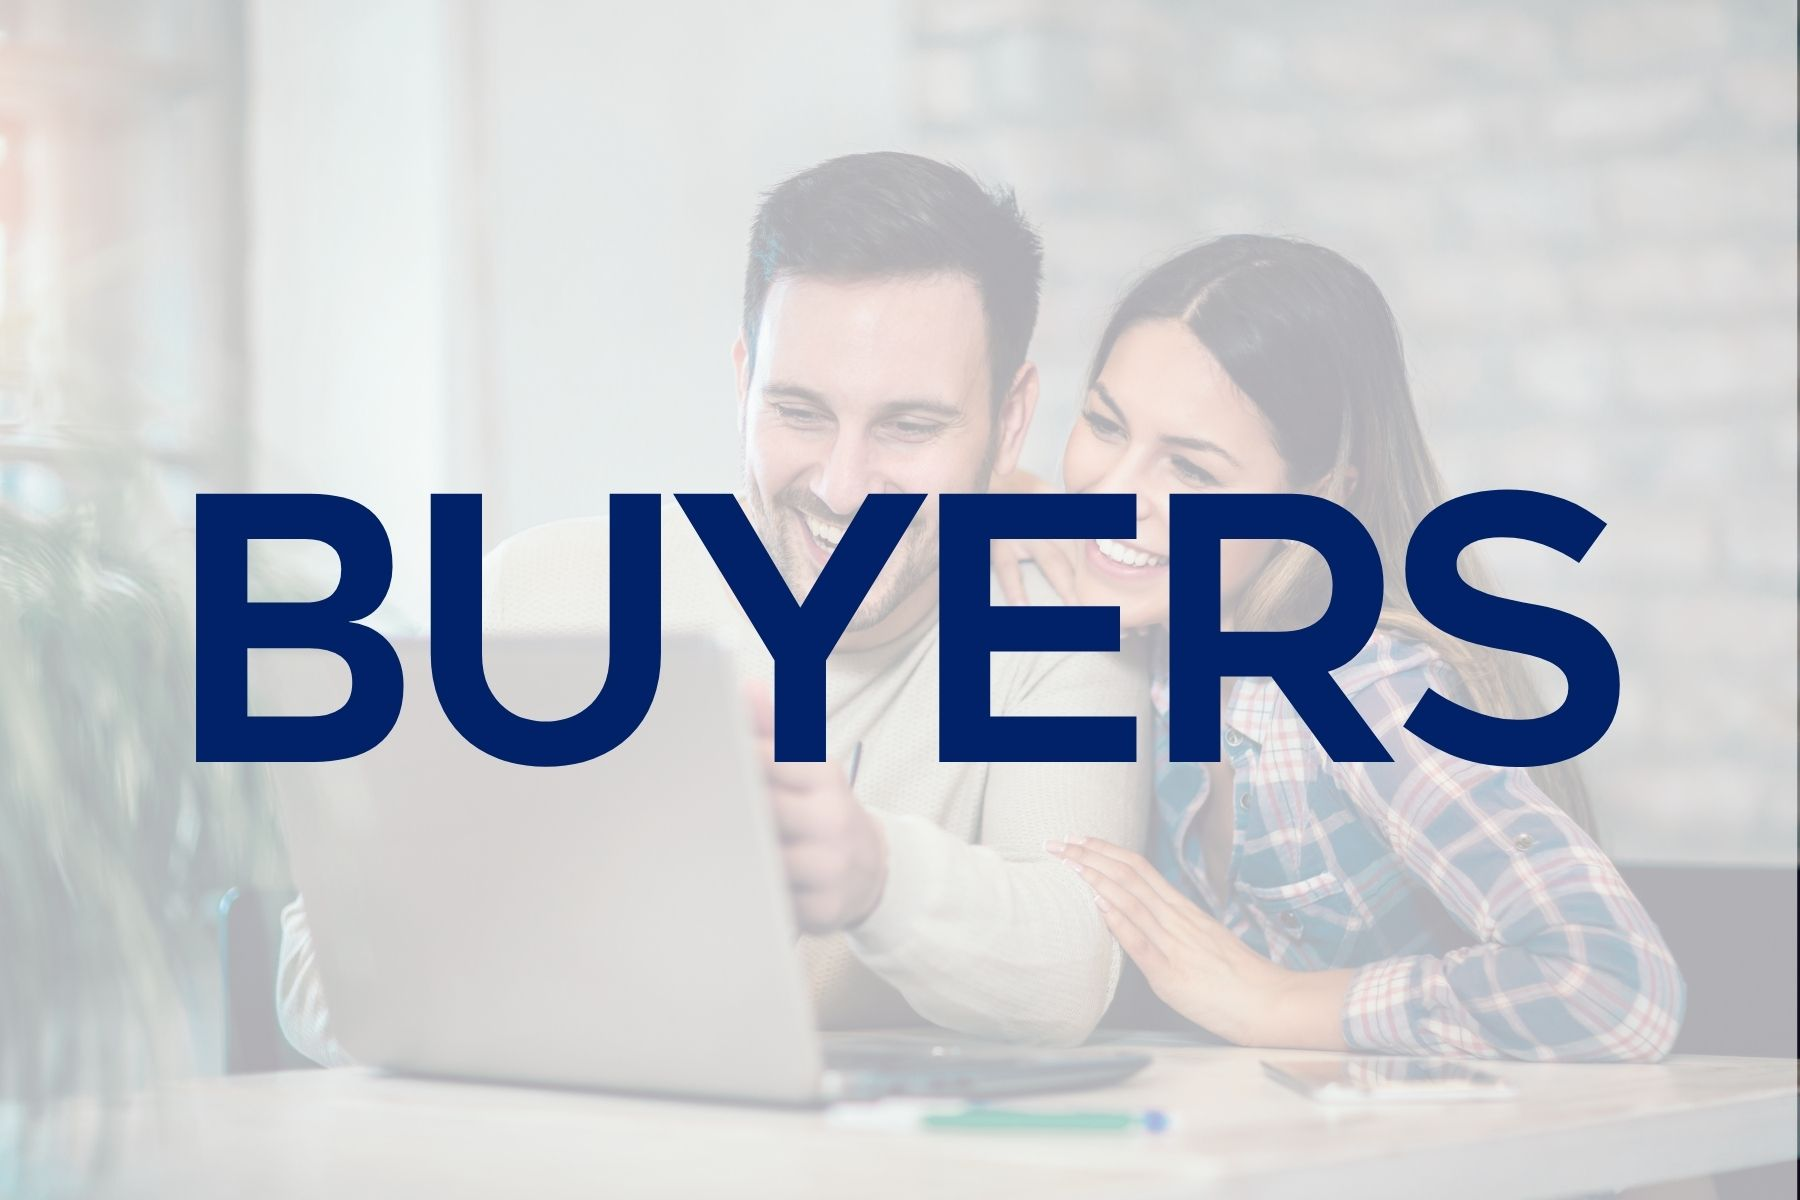 coldwell banker elite buyer blogs